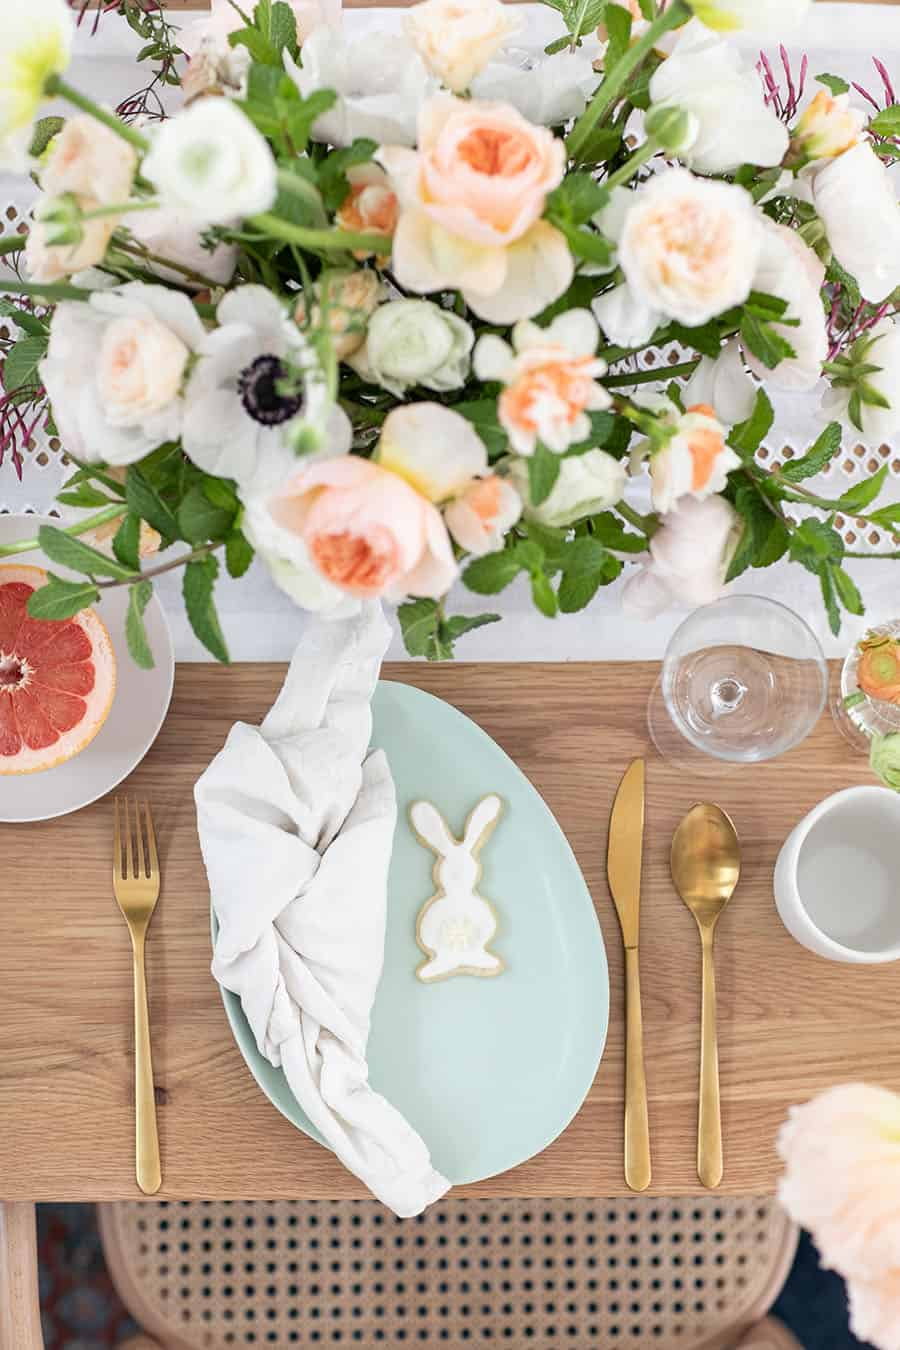 Beautiful table setting for an Easter brunch with blue dishes, glasses and flowers.